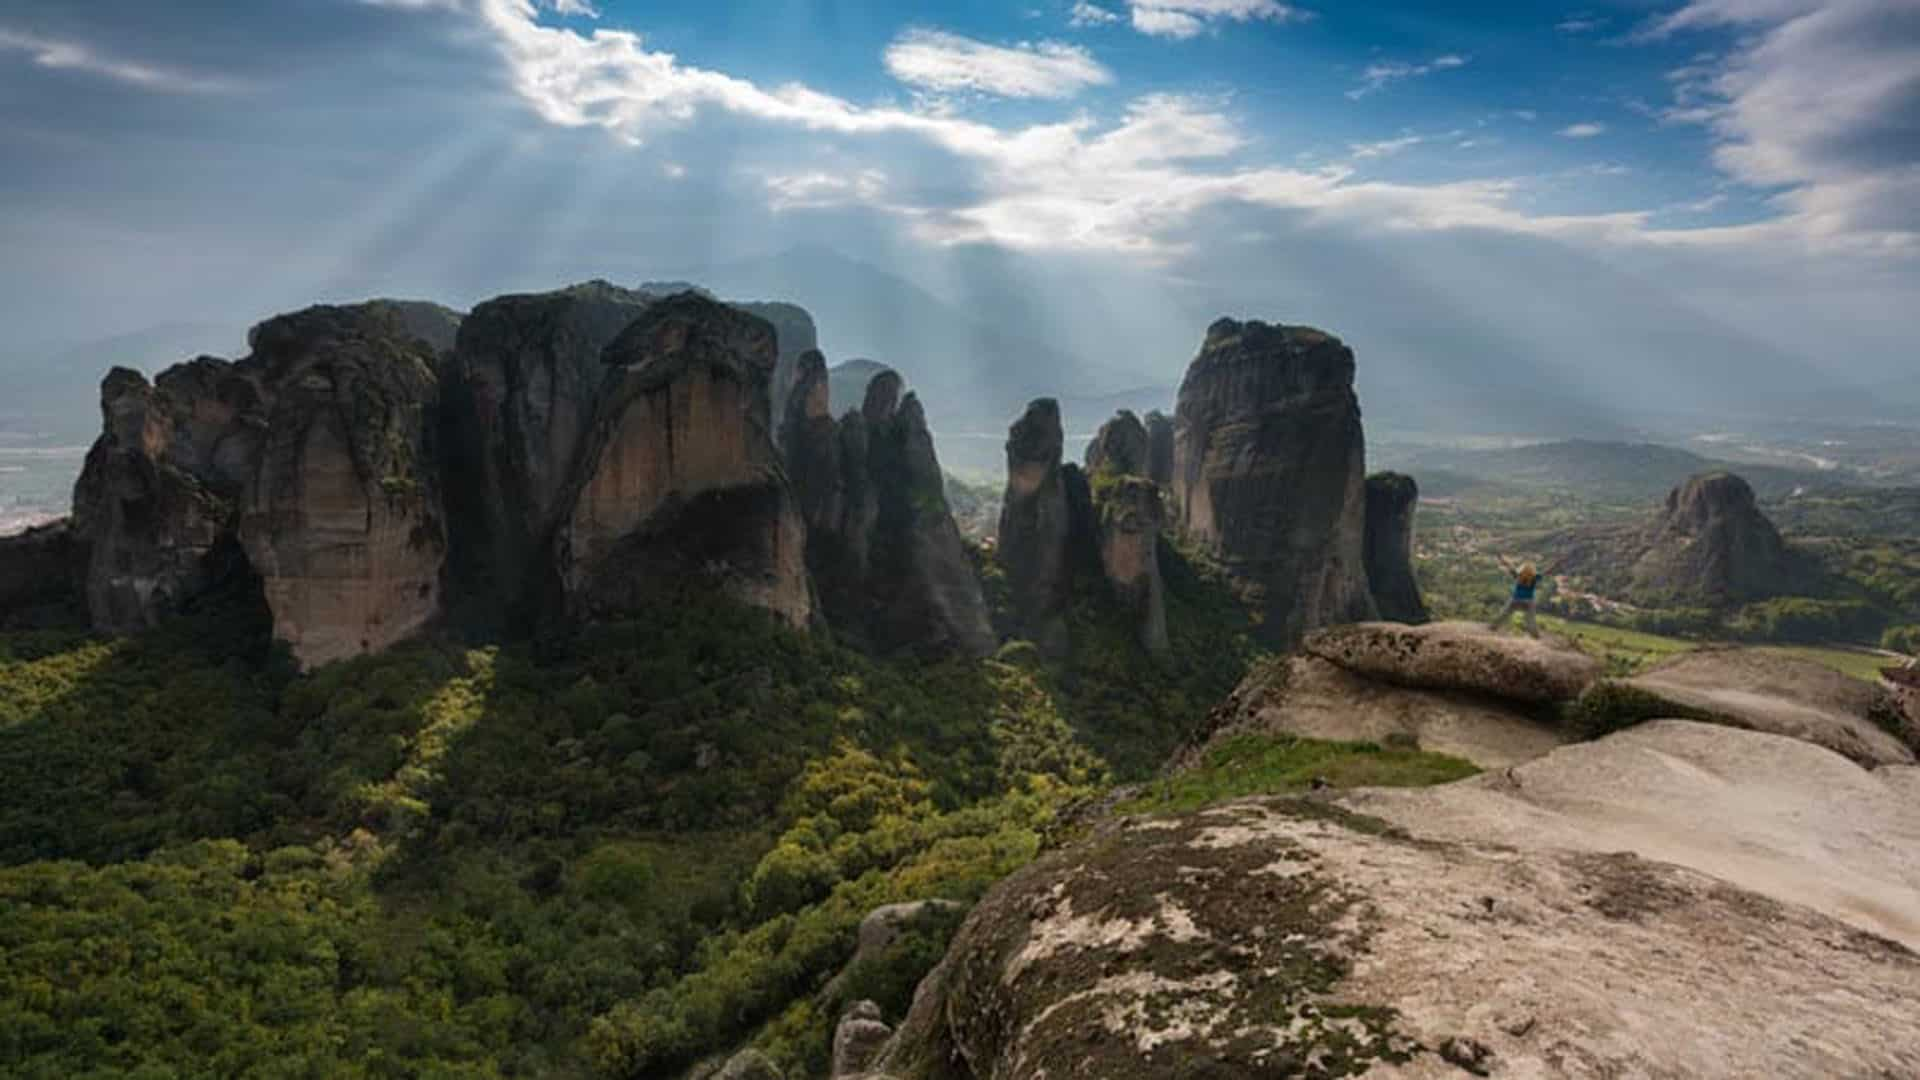 Superb viewpoints of Meteora along the road